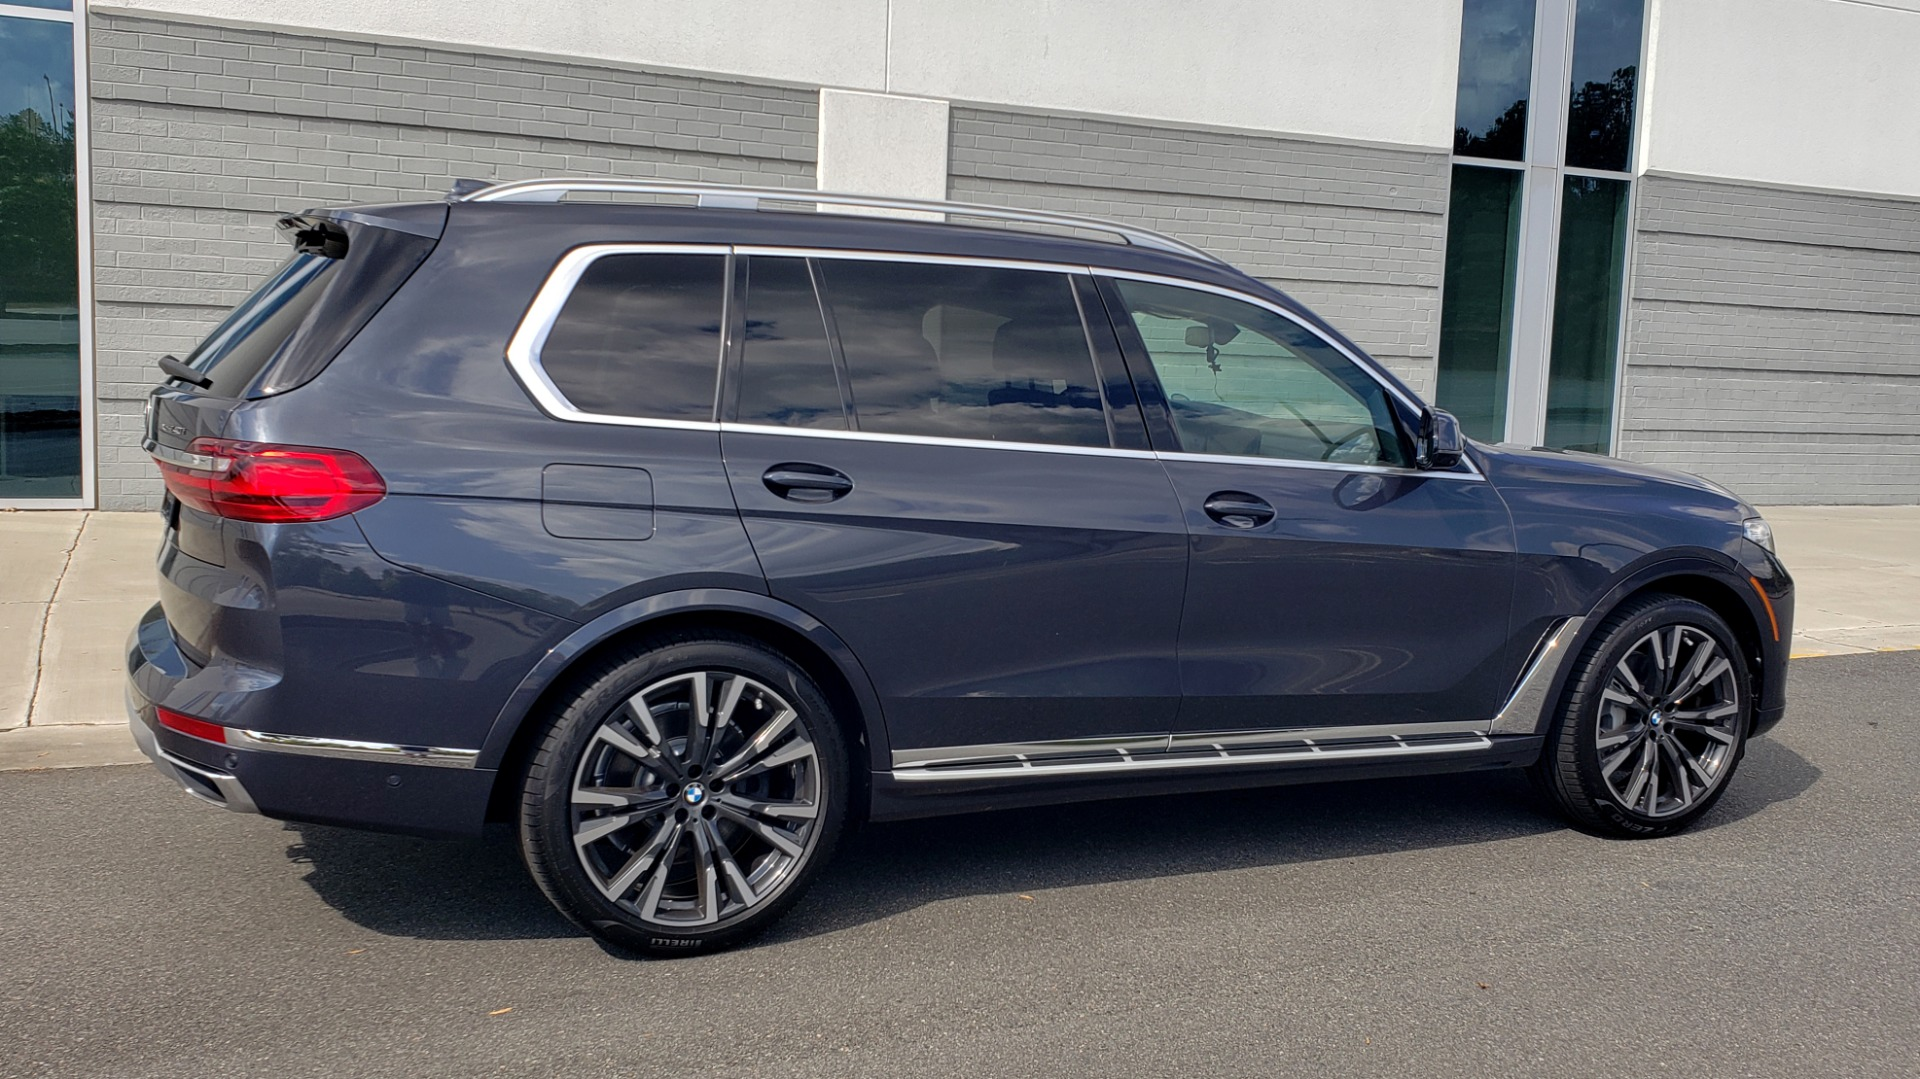 Used 2019 BMW X7 XDRIVE40I PREMIUM / LUXURY / COLD WEATHER / PARK ASST / PANORAMIC SKY / TOW for sale $75,999 at Formula Imports in Charlotte NC 28227 7